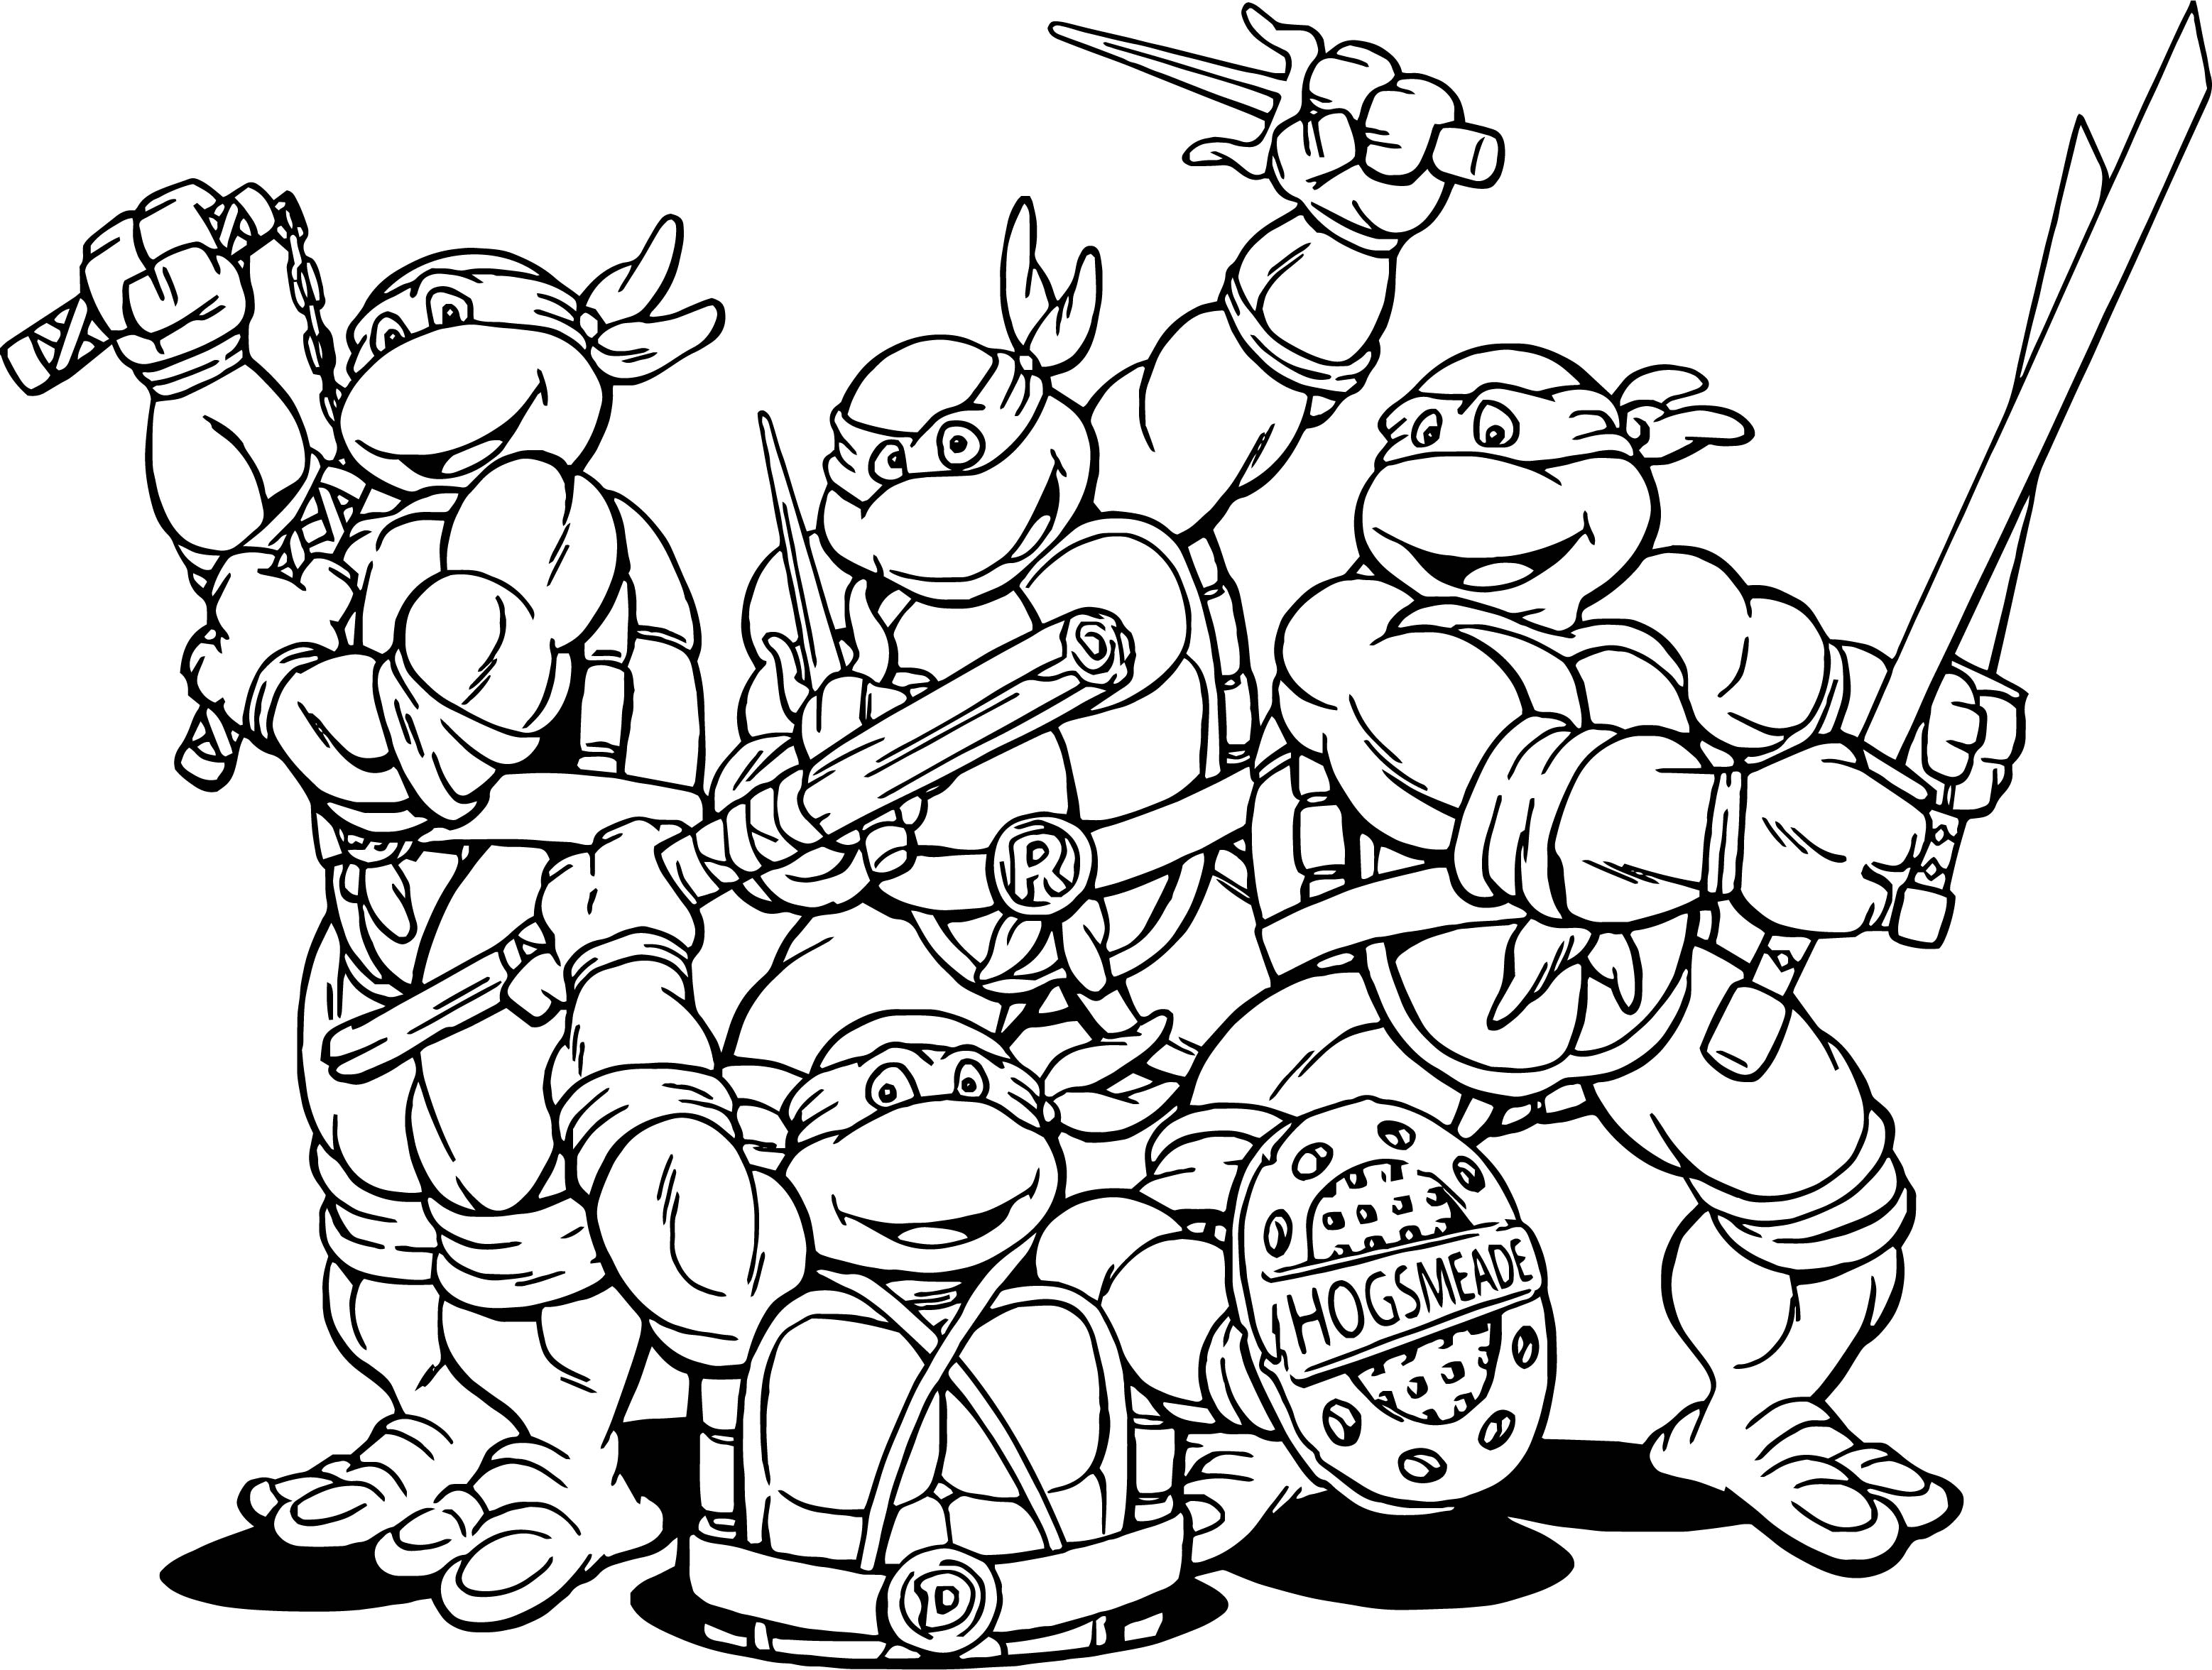 turtle cartoon coloring pages - photo#39